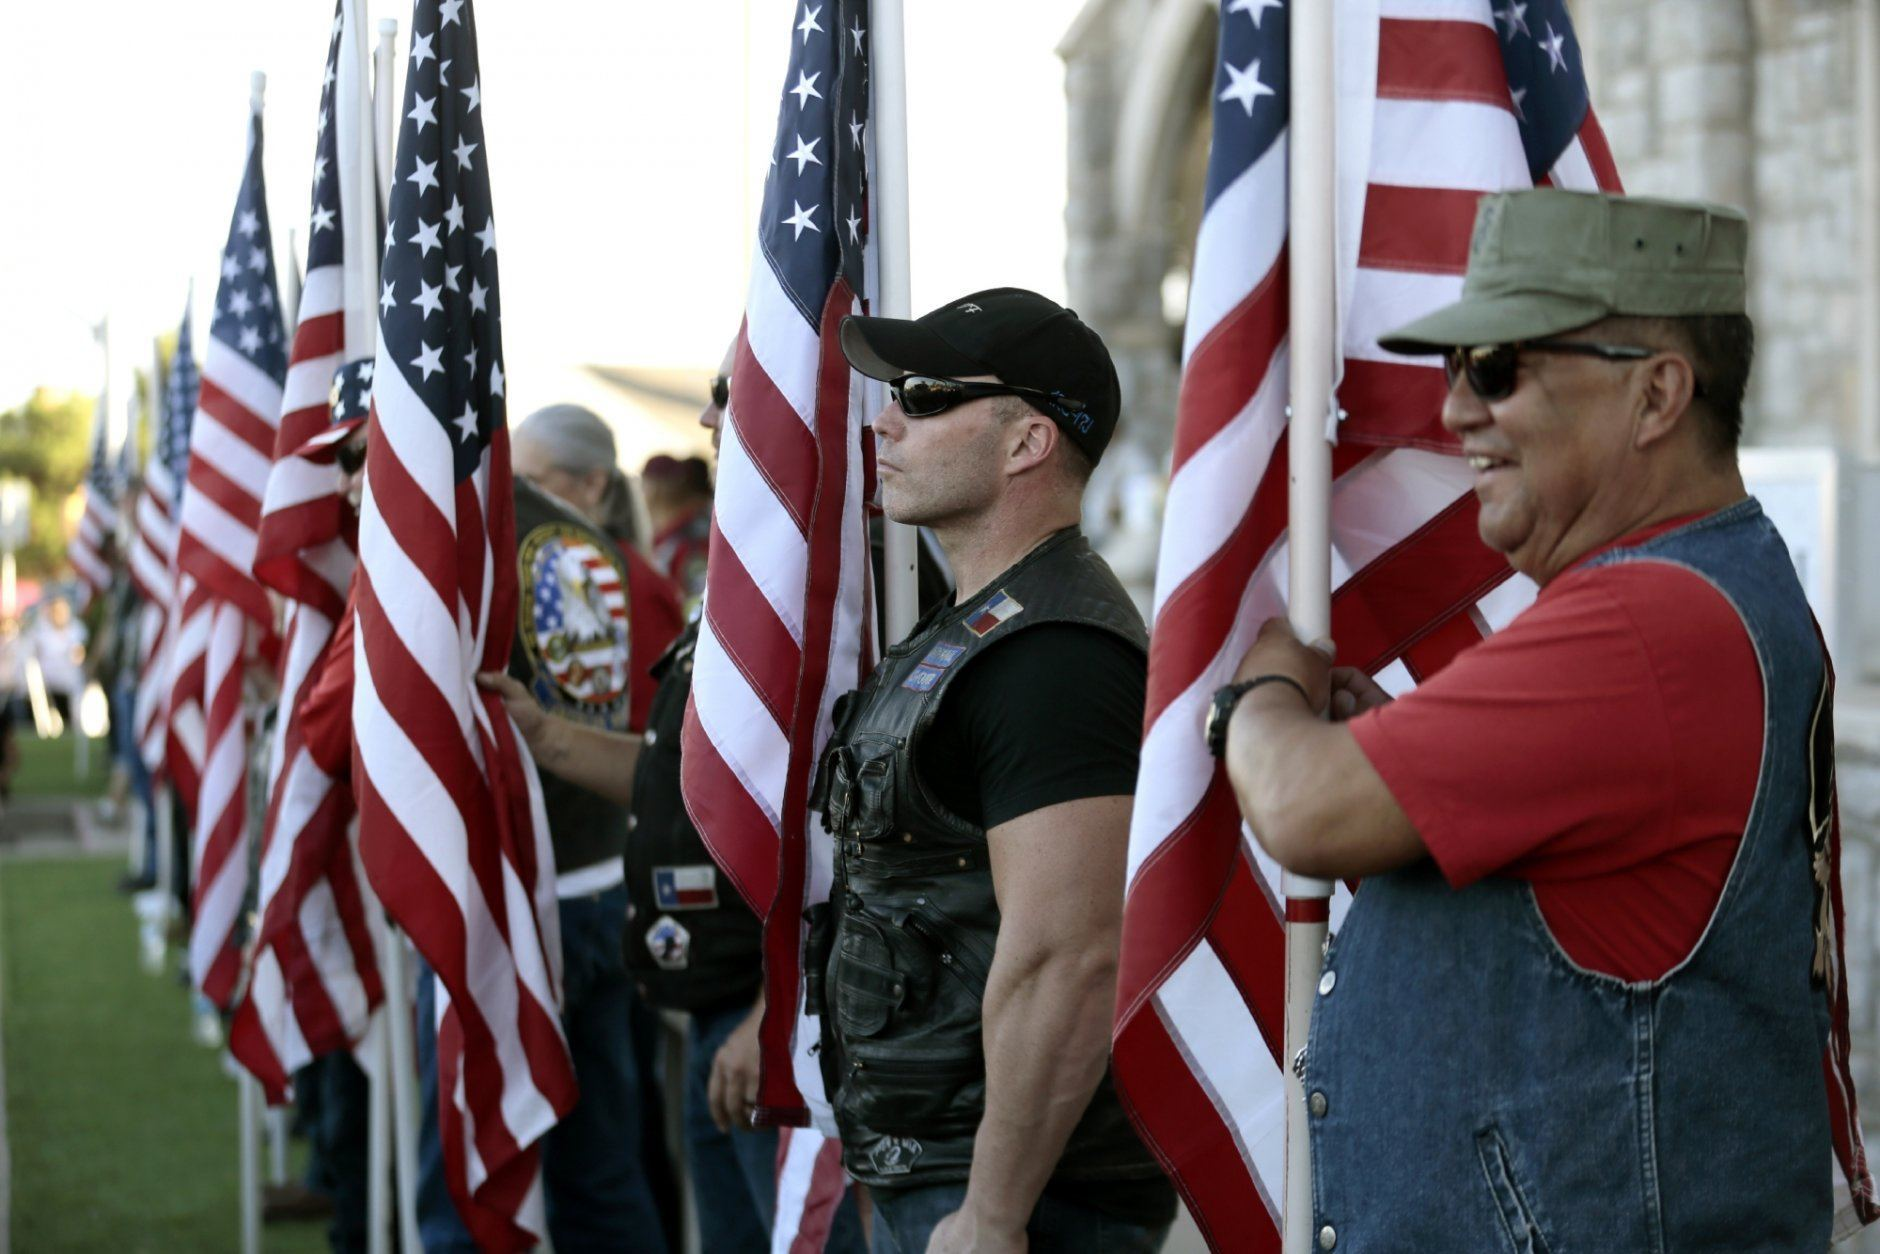 Veterans groups line the sidewalk outside Margie Reckard's funeral at La Paz Faith Memorial & Spiritual Center in El Paso, Texas Friday, Aug. 16, 2019. Without much family and friends in town, Antonio Basco invited the public to his longtime companion's funeral and El Paso showed up in droves. Reckard was among those killed in a mass shooting on Aug. 3. (Mark Lambie/The El Paso Times via AP)